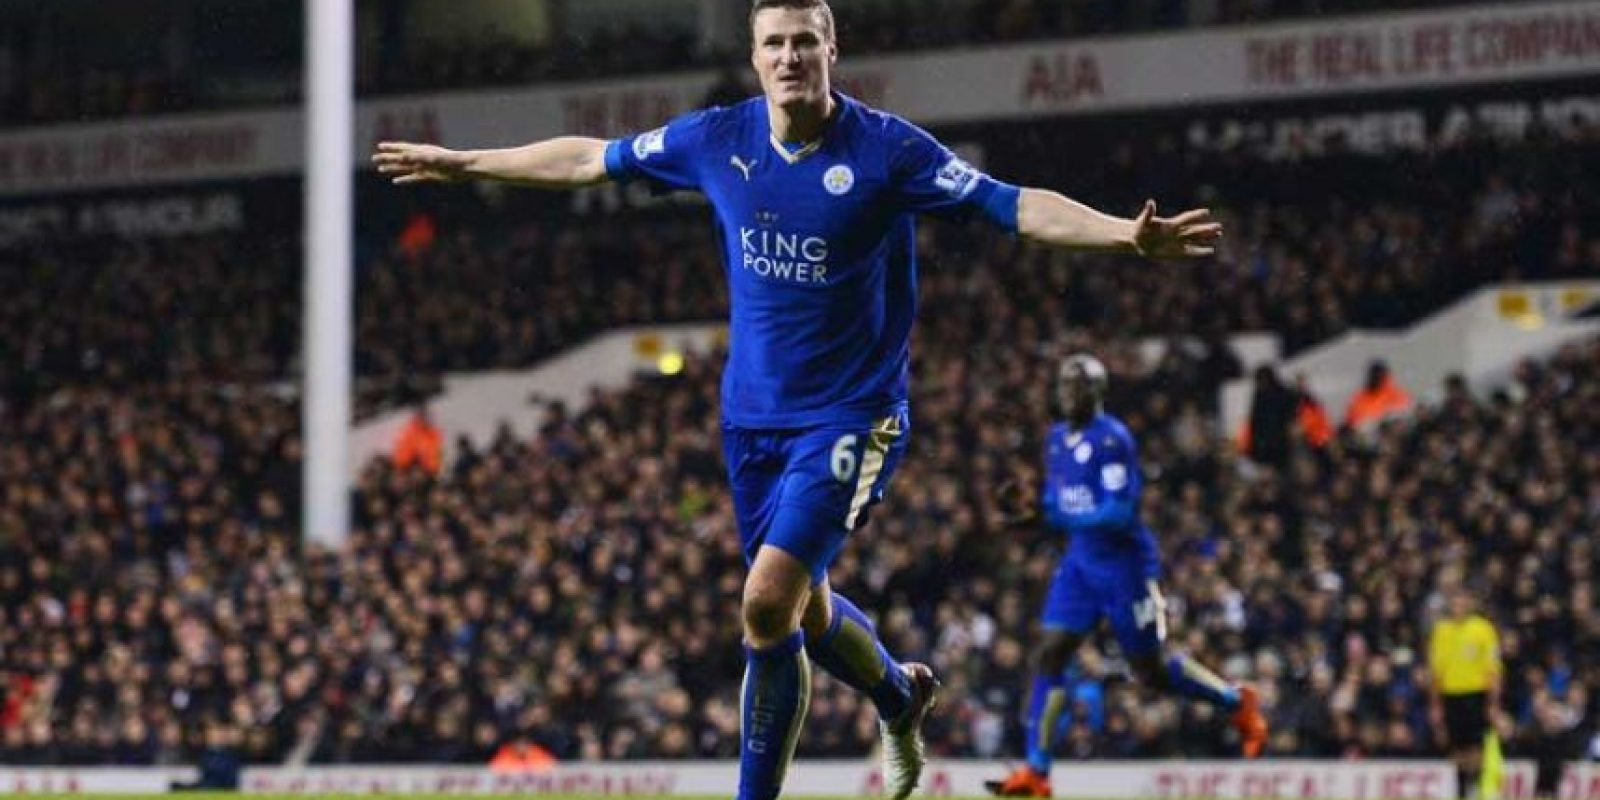 CENTRAL: Robert Huth Foto:Getty Images